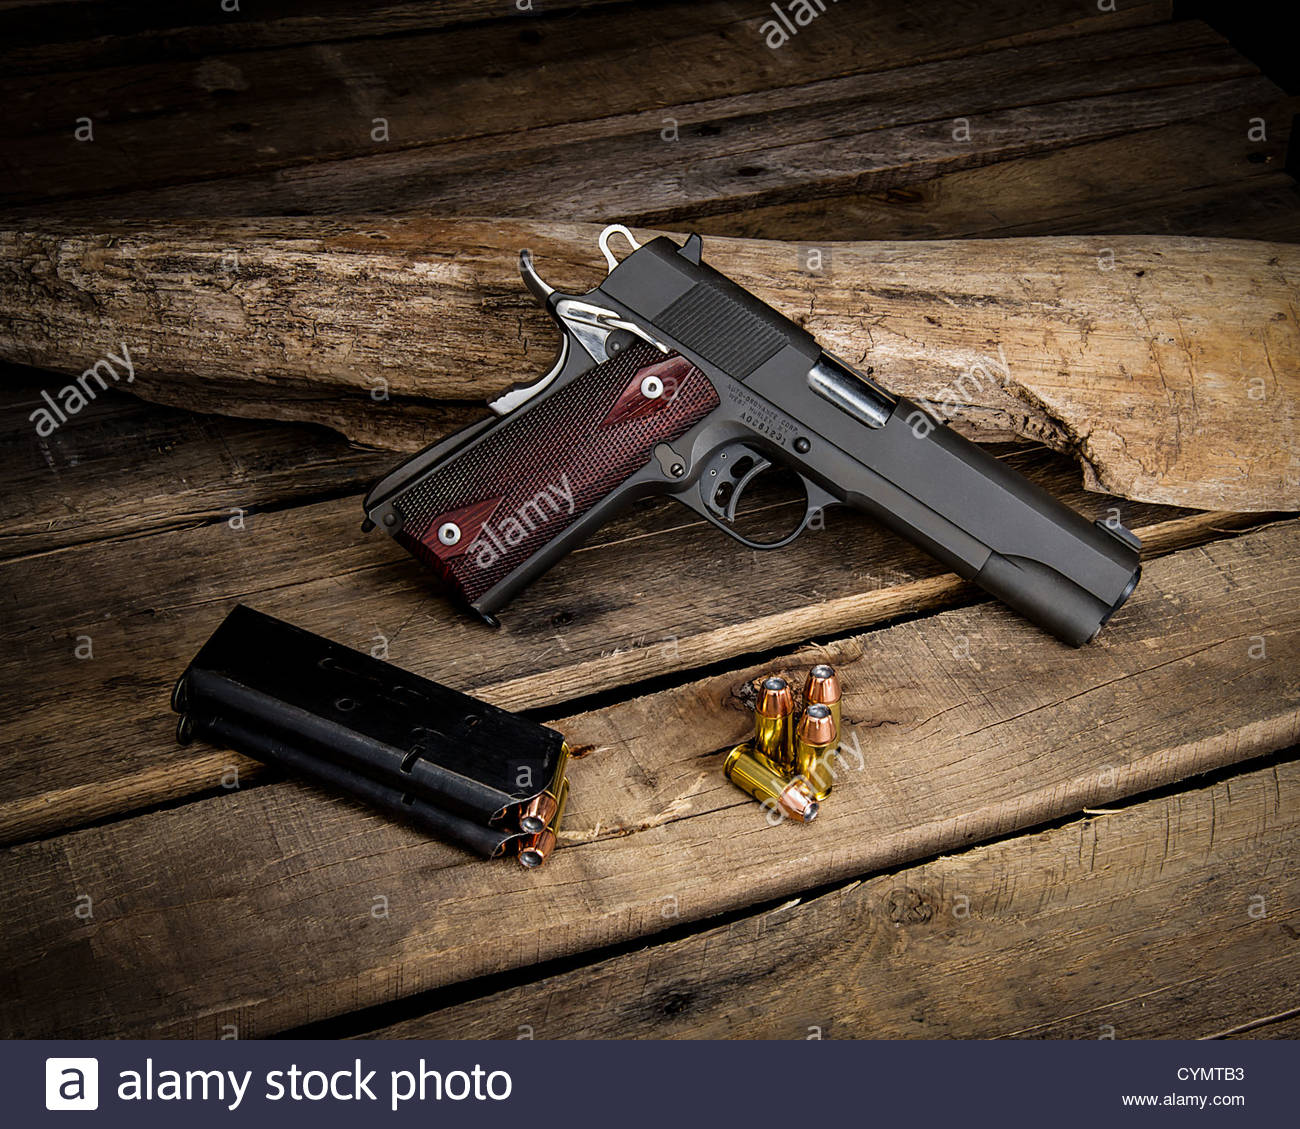 M1911 Pistol against a wooden background and displayed with a 1300x1129